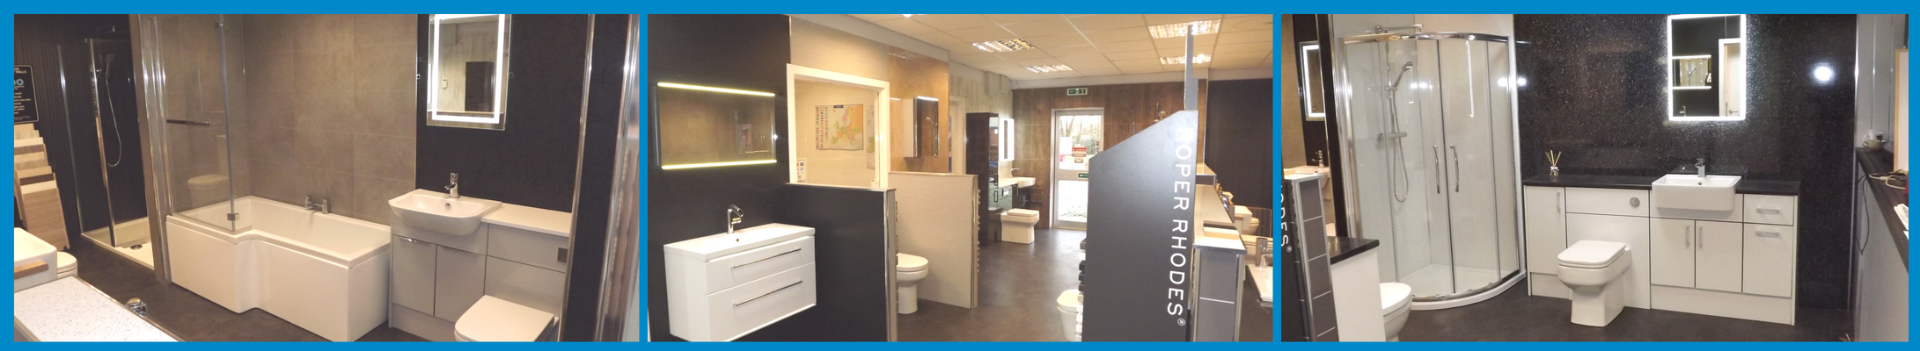 Plumbstore Kilmarnock Bathroom showroom display areas